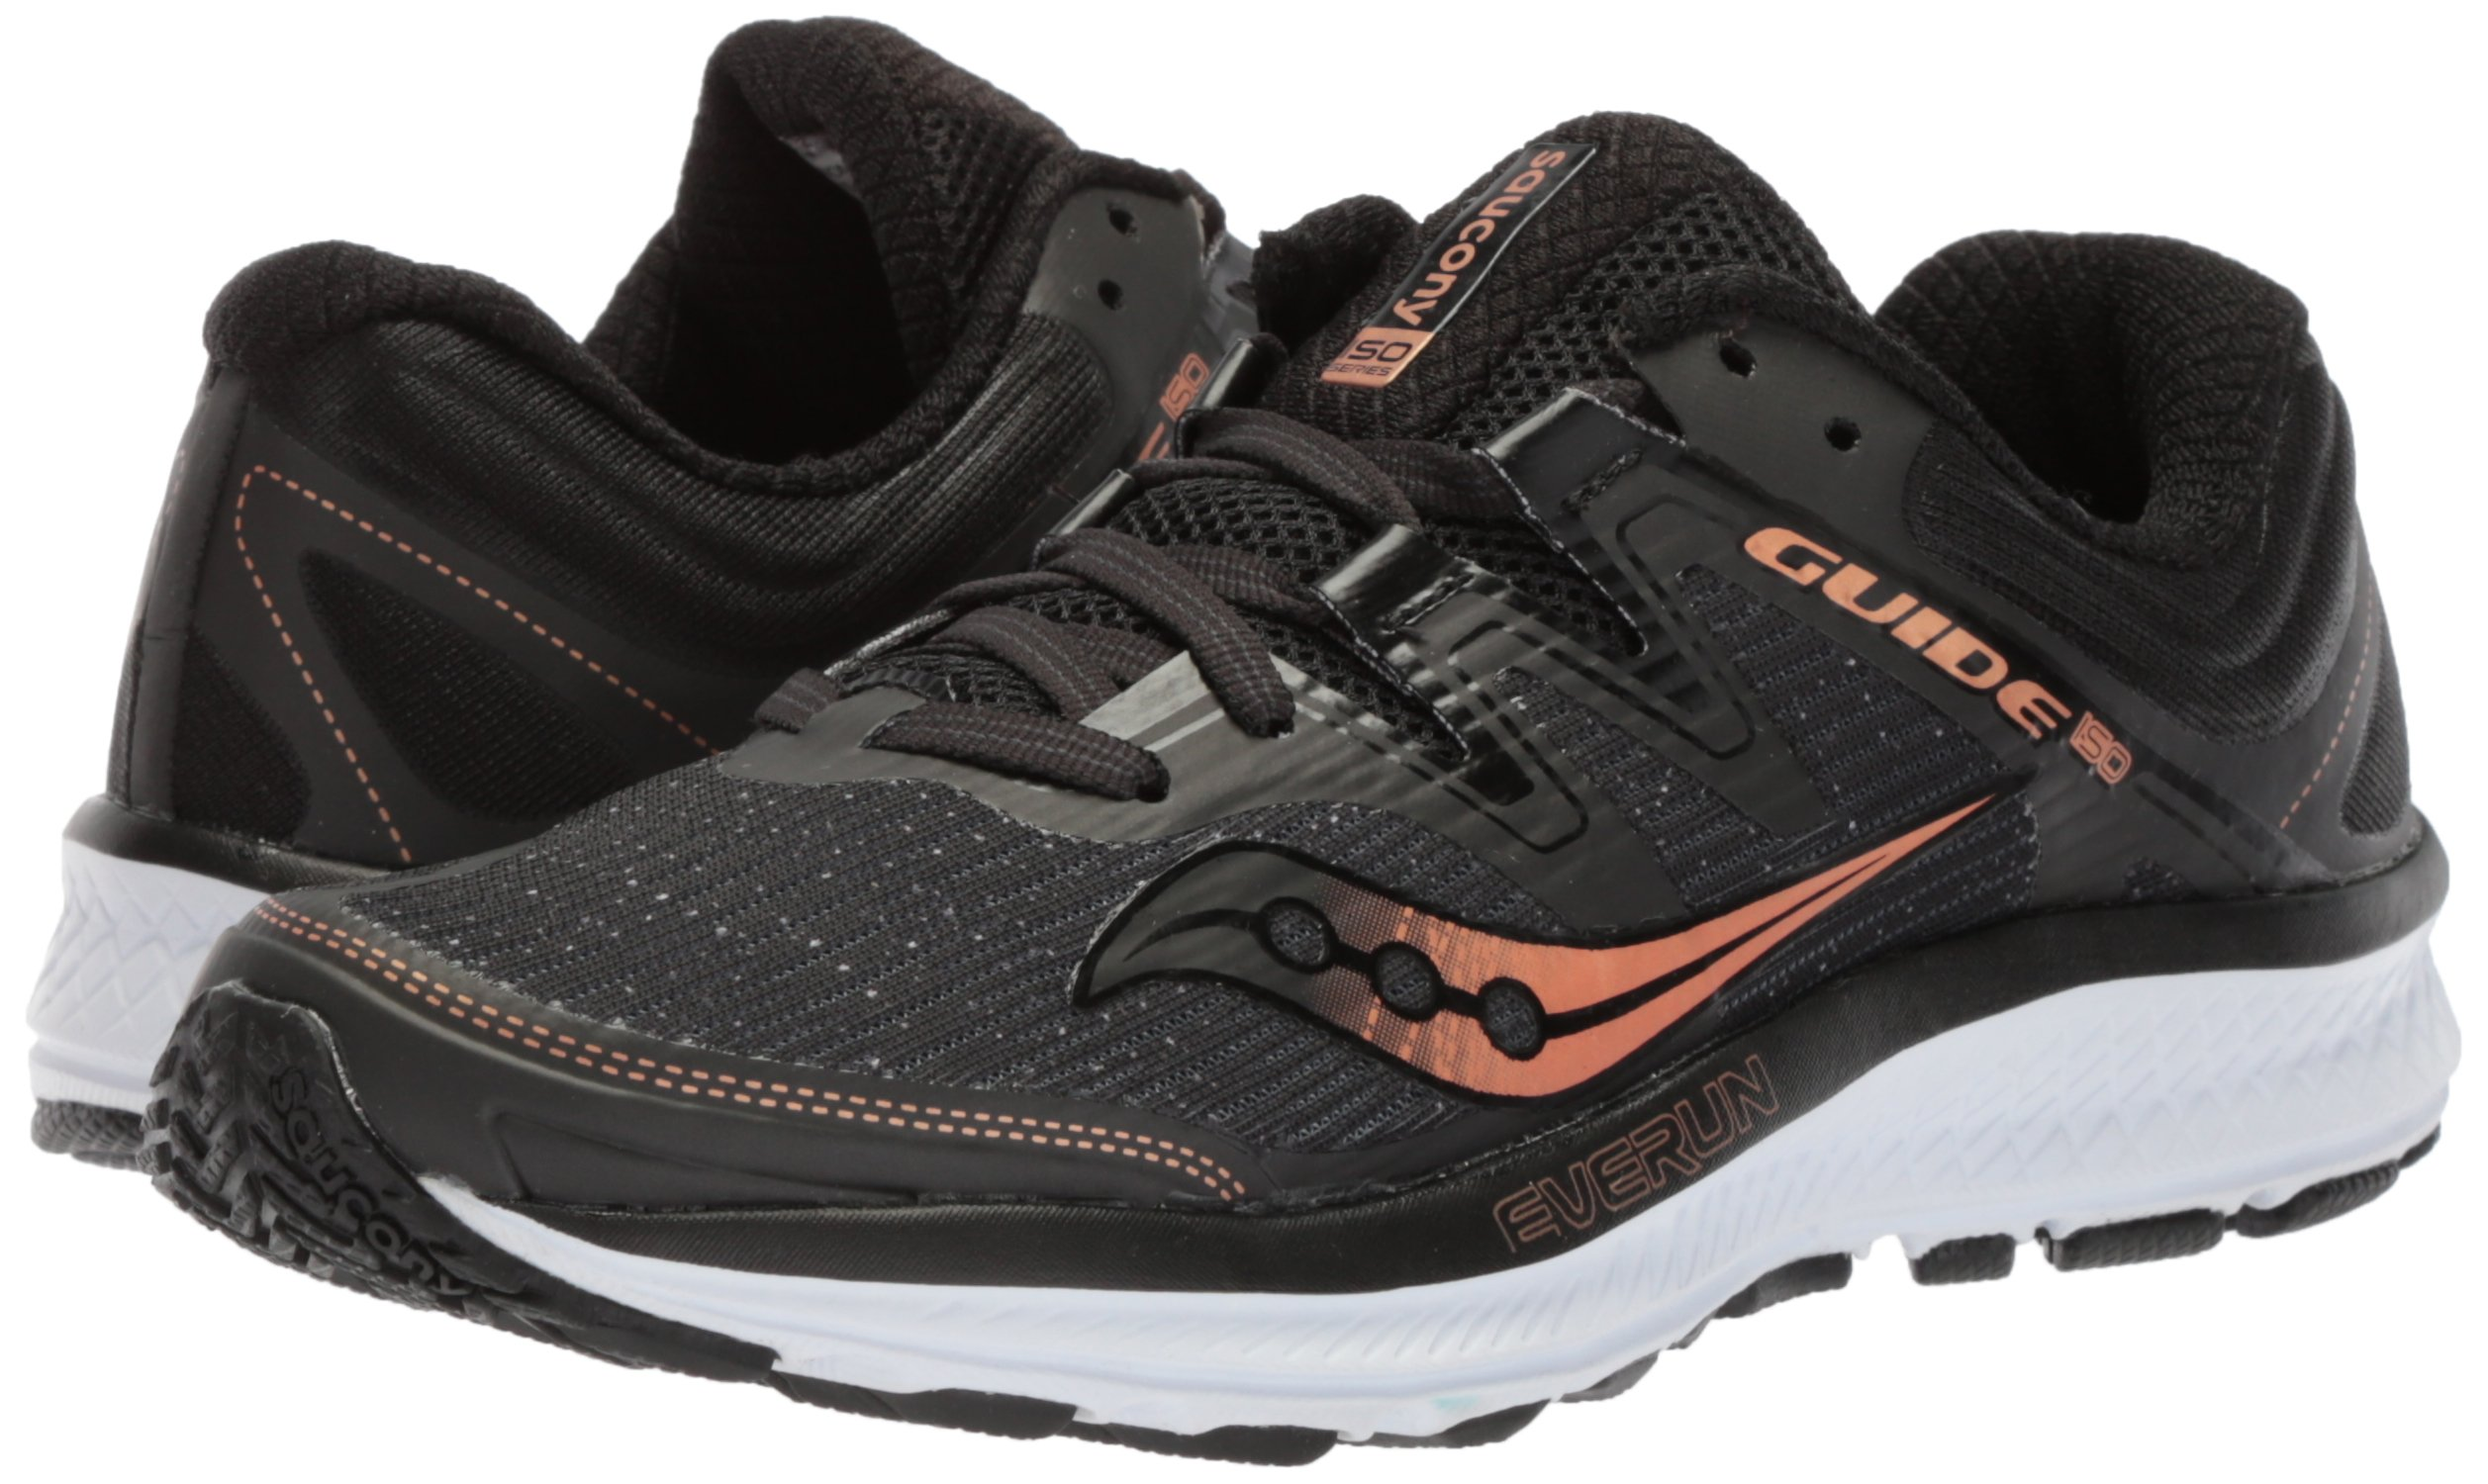 Saucony Women's Guide Iso Running Shoe, Black/Denim, 10.5 Medium US by Saucony (Image #6)